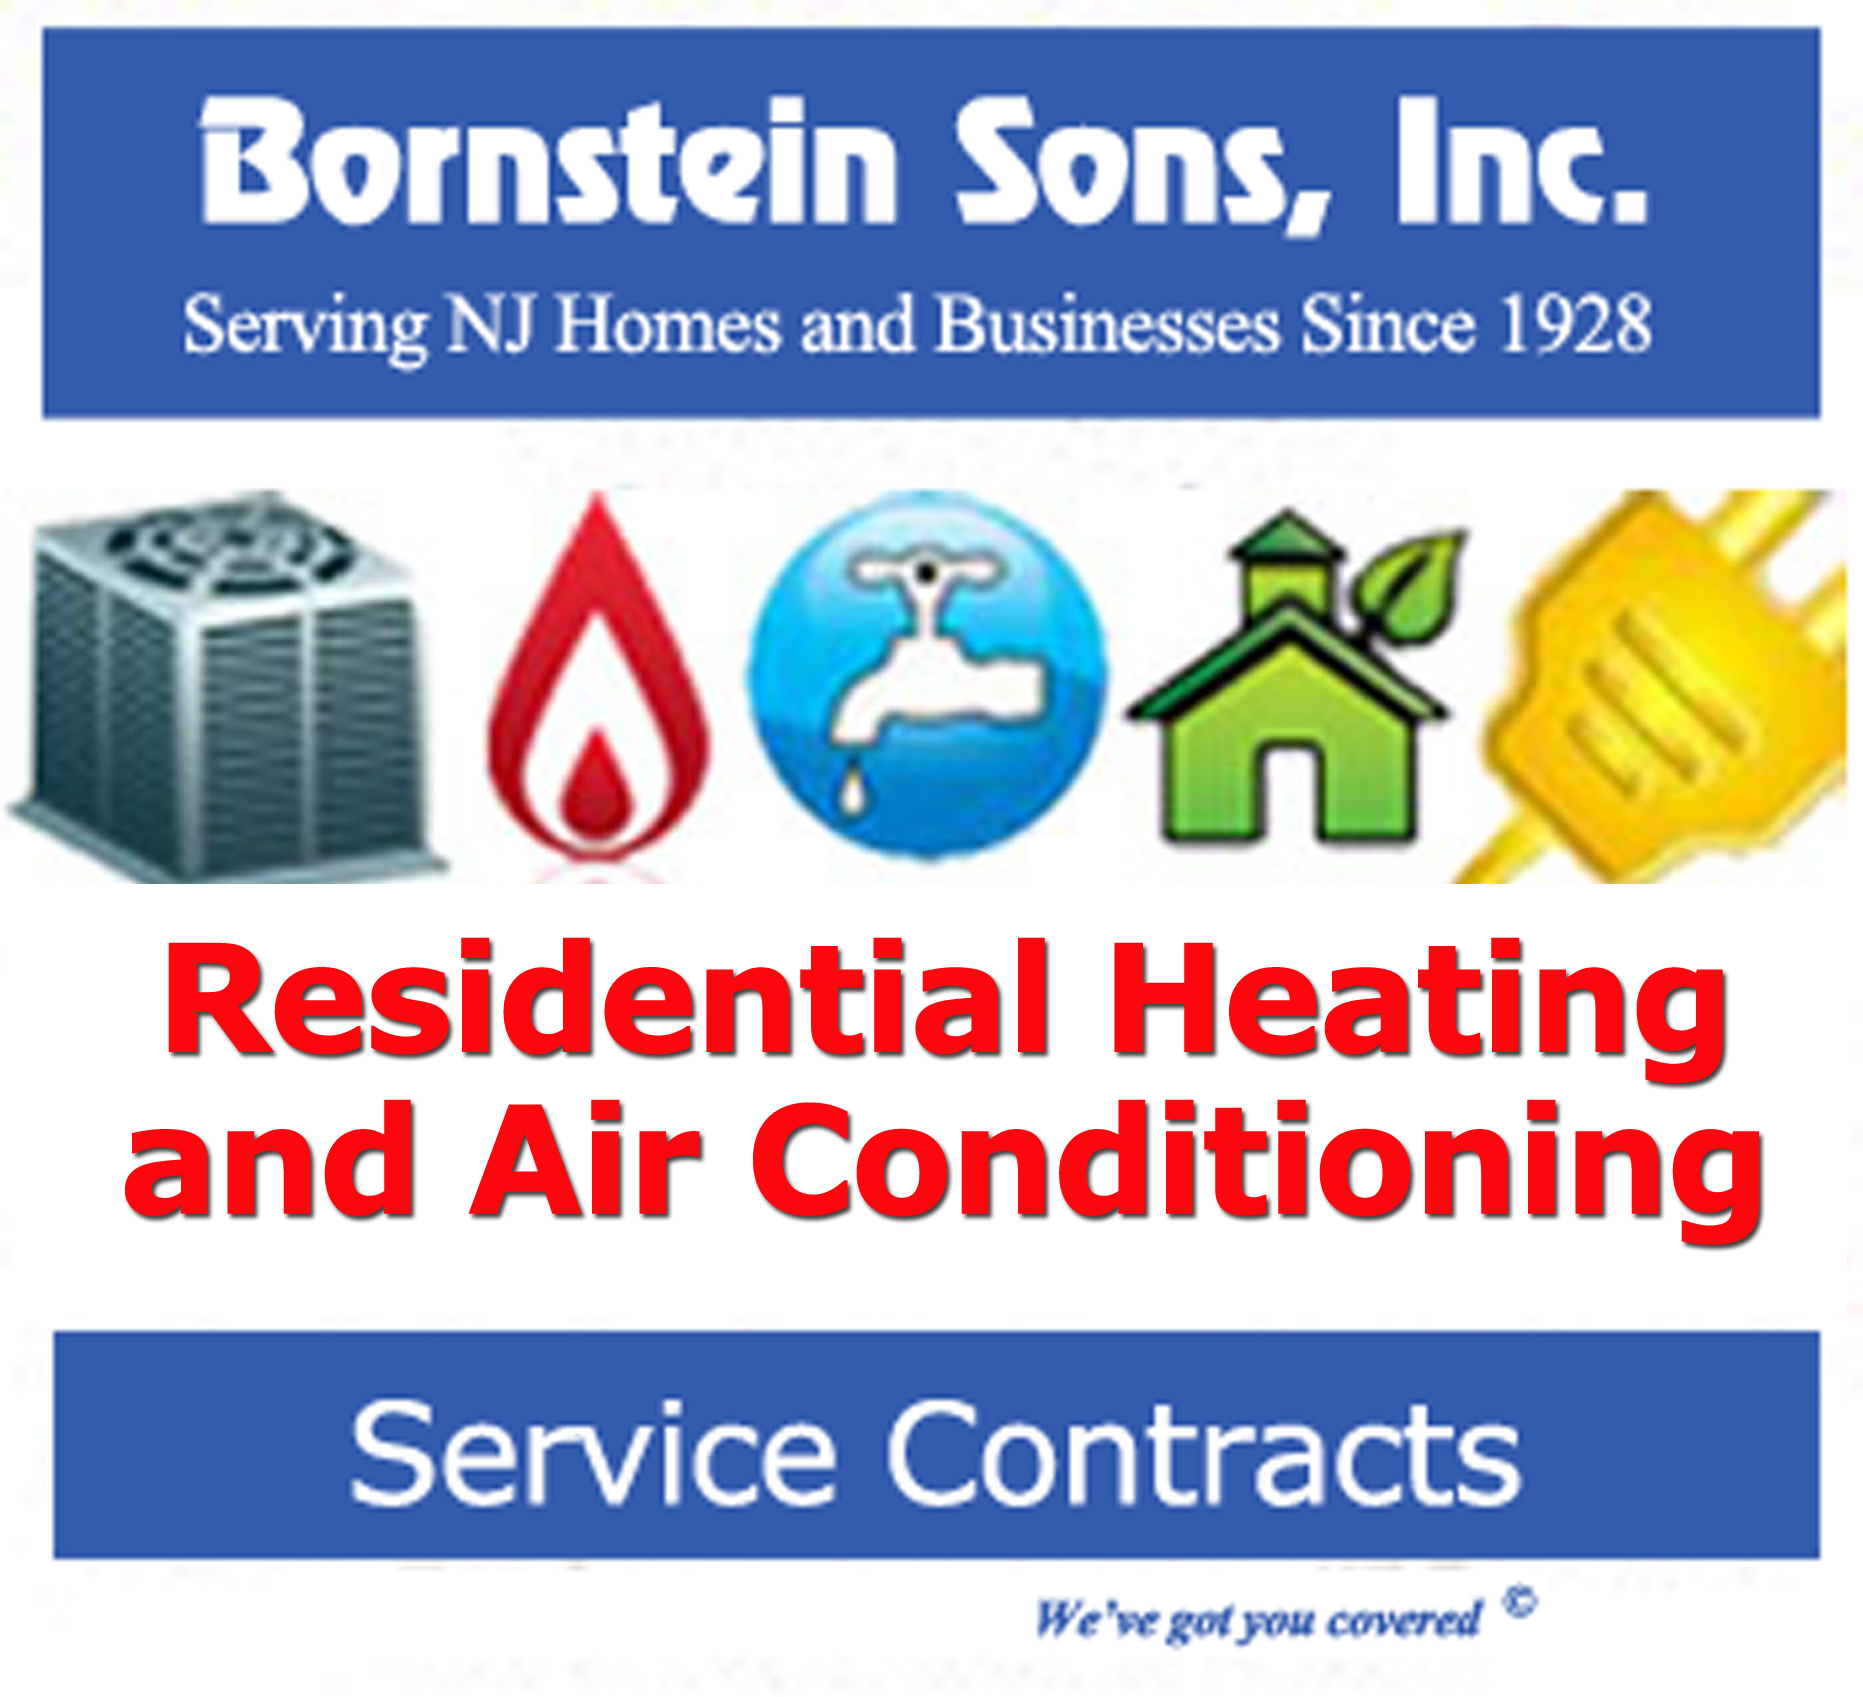 Bornstein Sons offers Service Contracts for Residential Customers in northern and north central New Jersey.